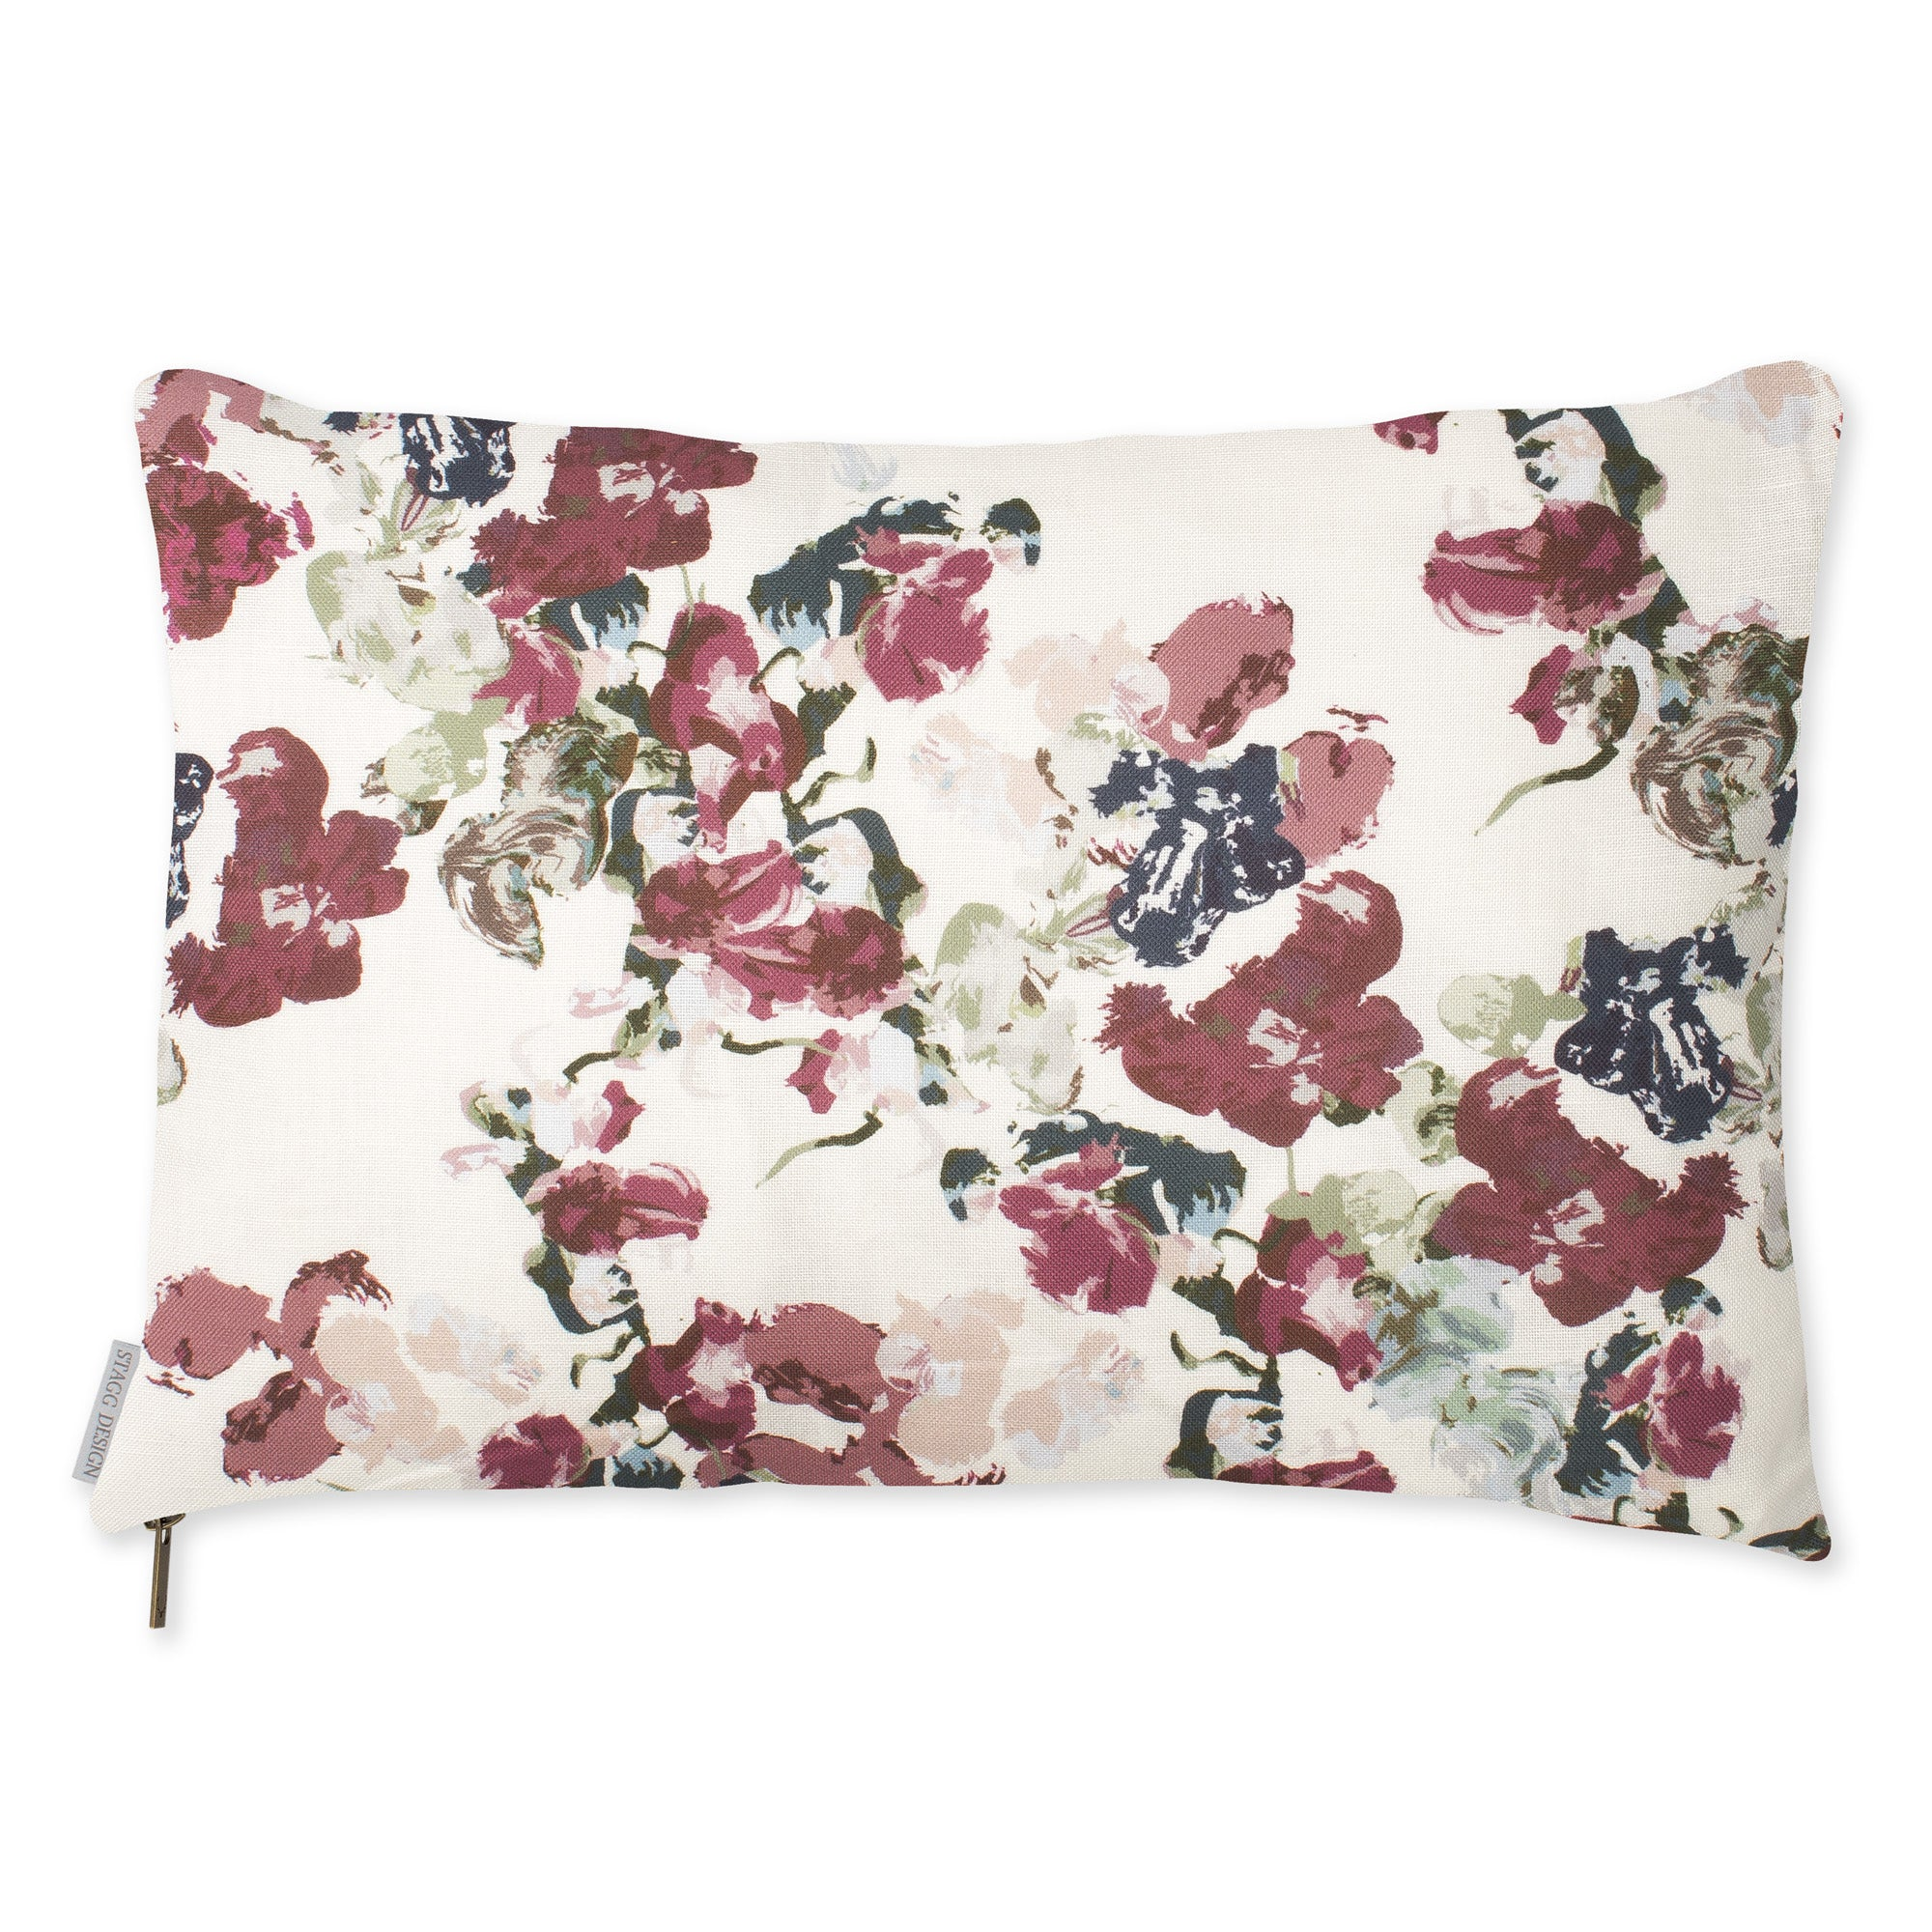 Anna Floral Pillow - Currant